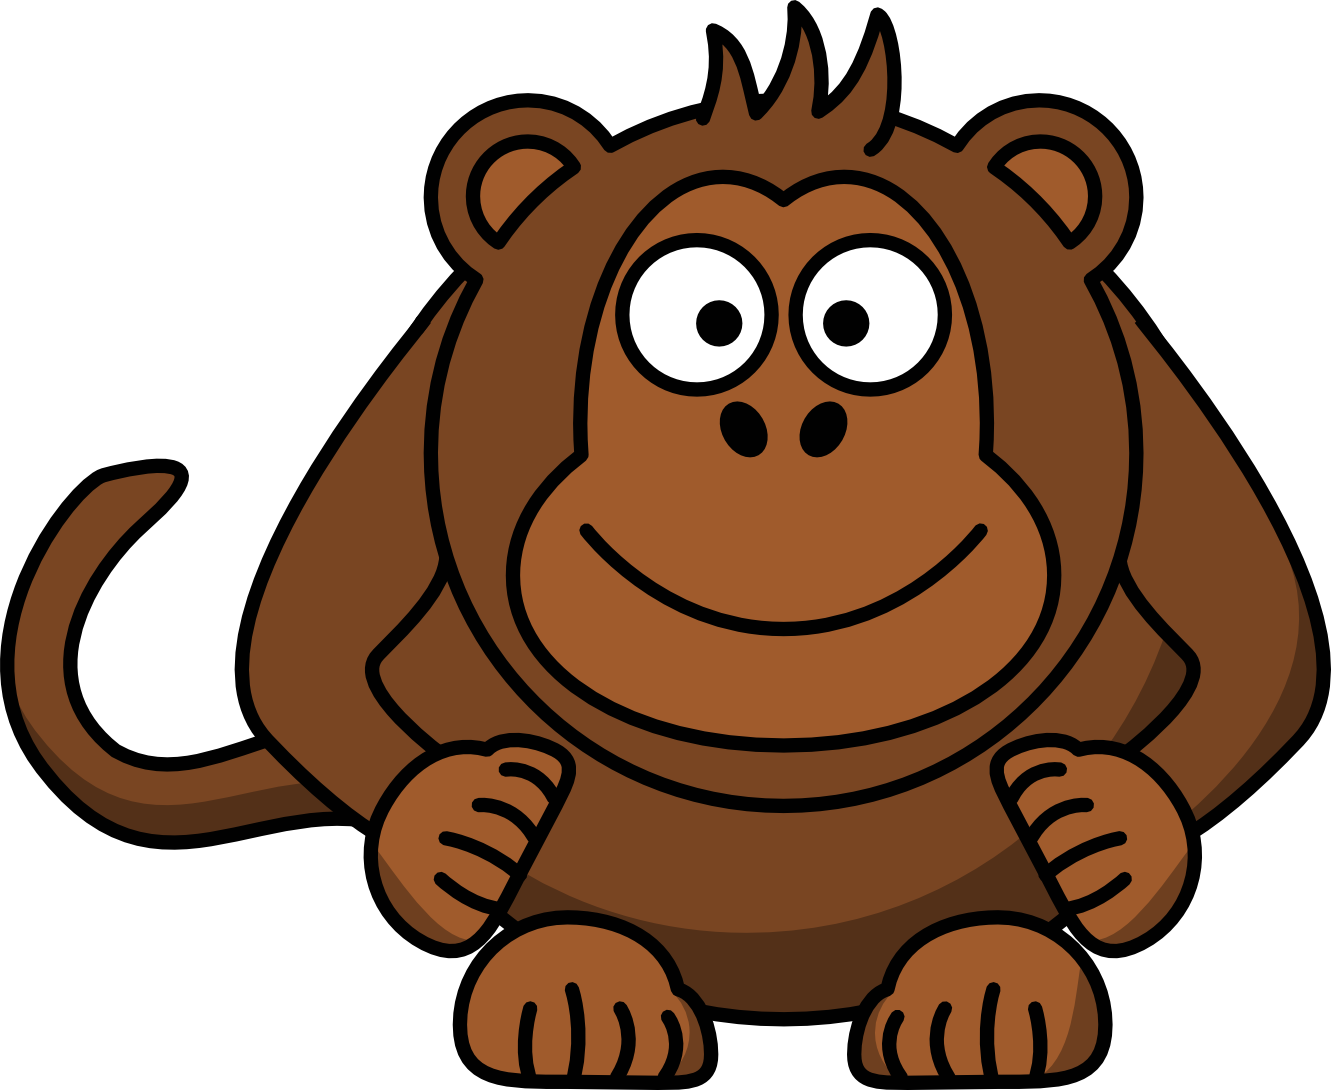 Hands clipart monkey. Spider at getdrawings com